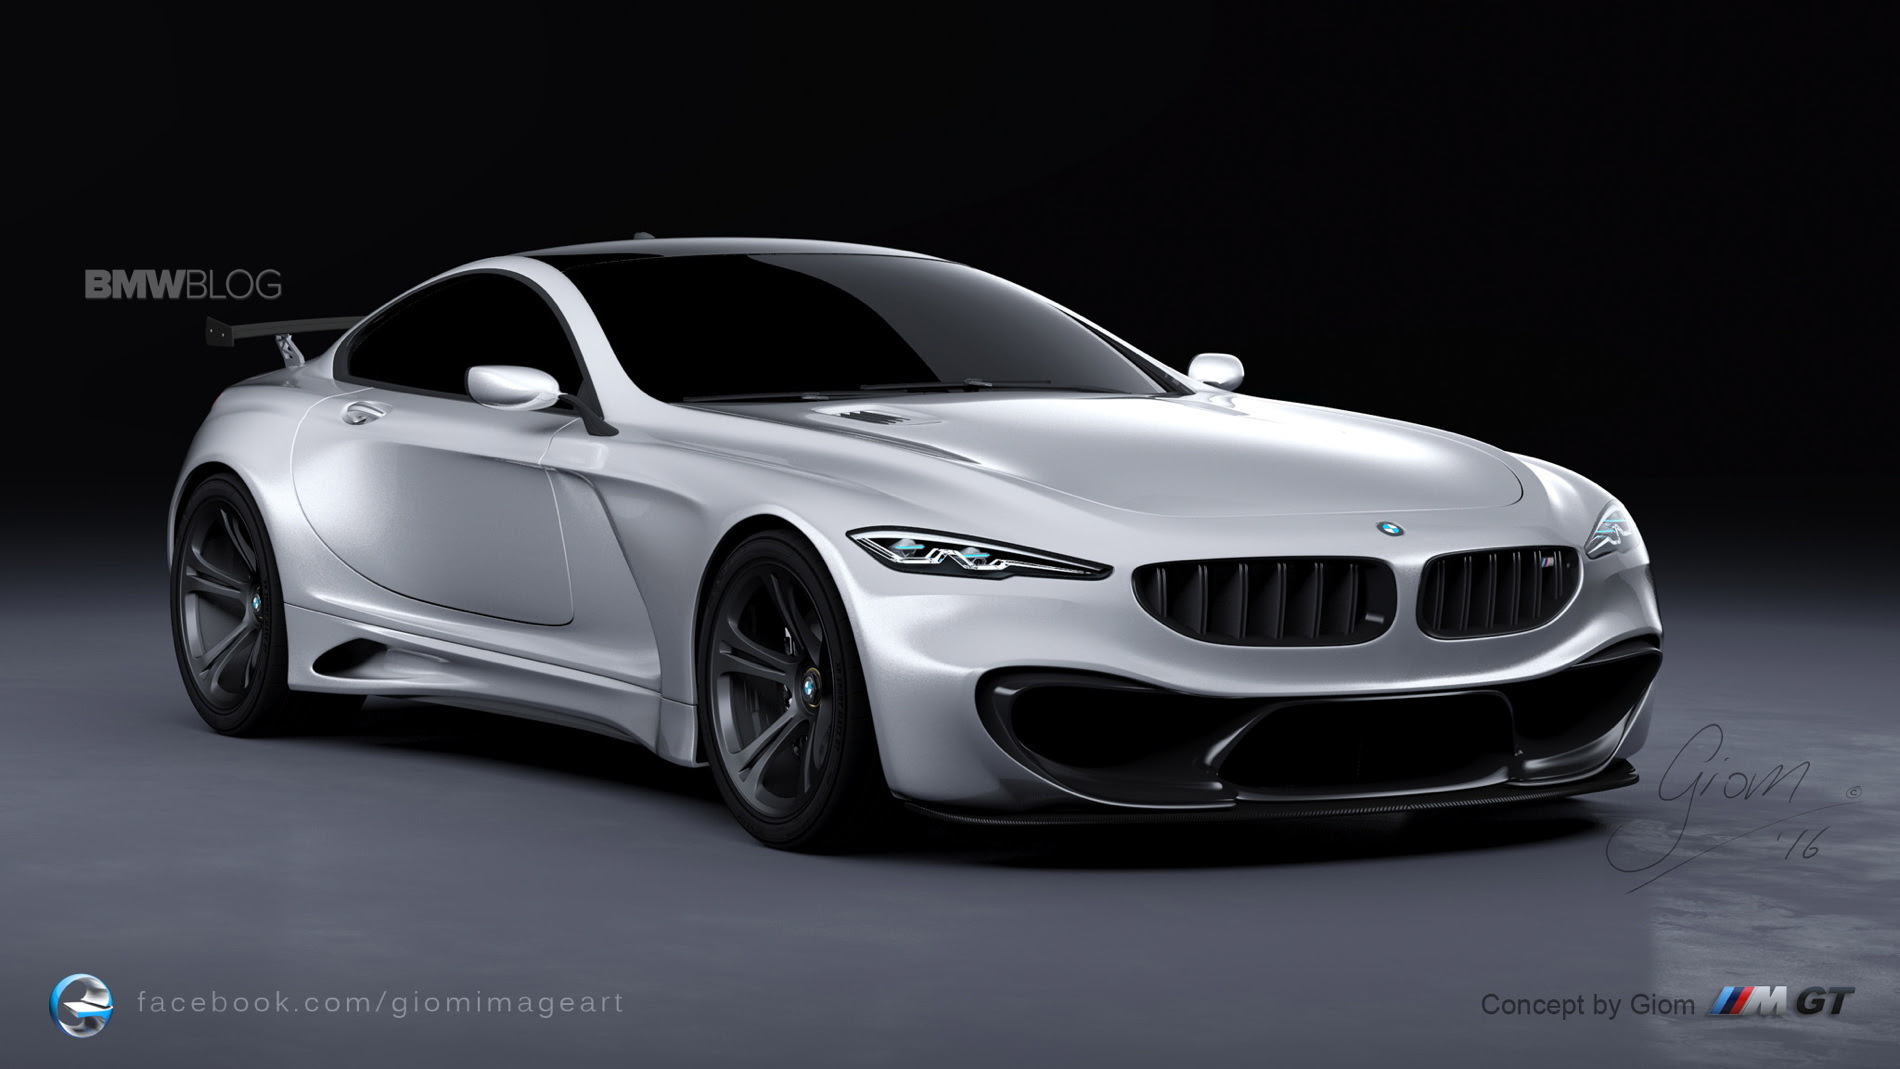 Design Study - What a BMW M-GT could look like